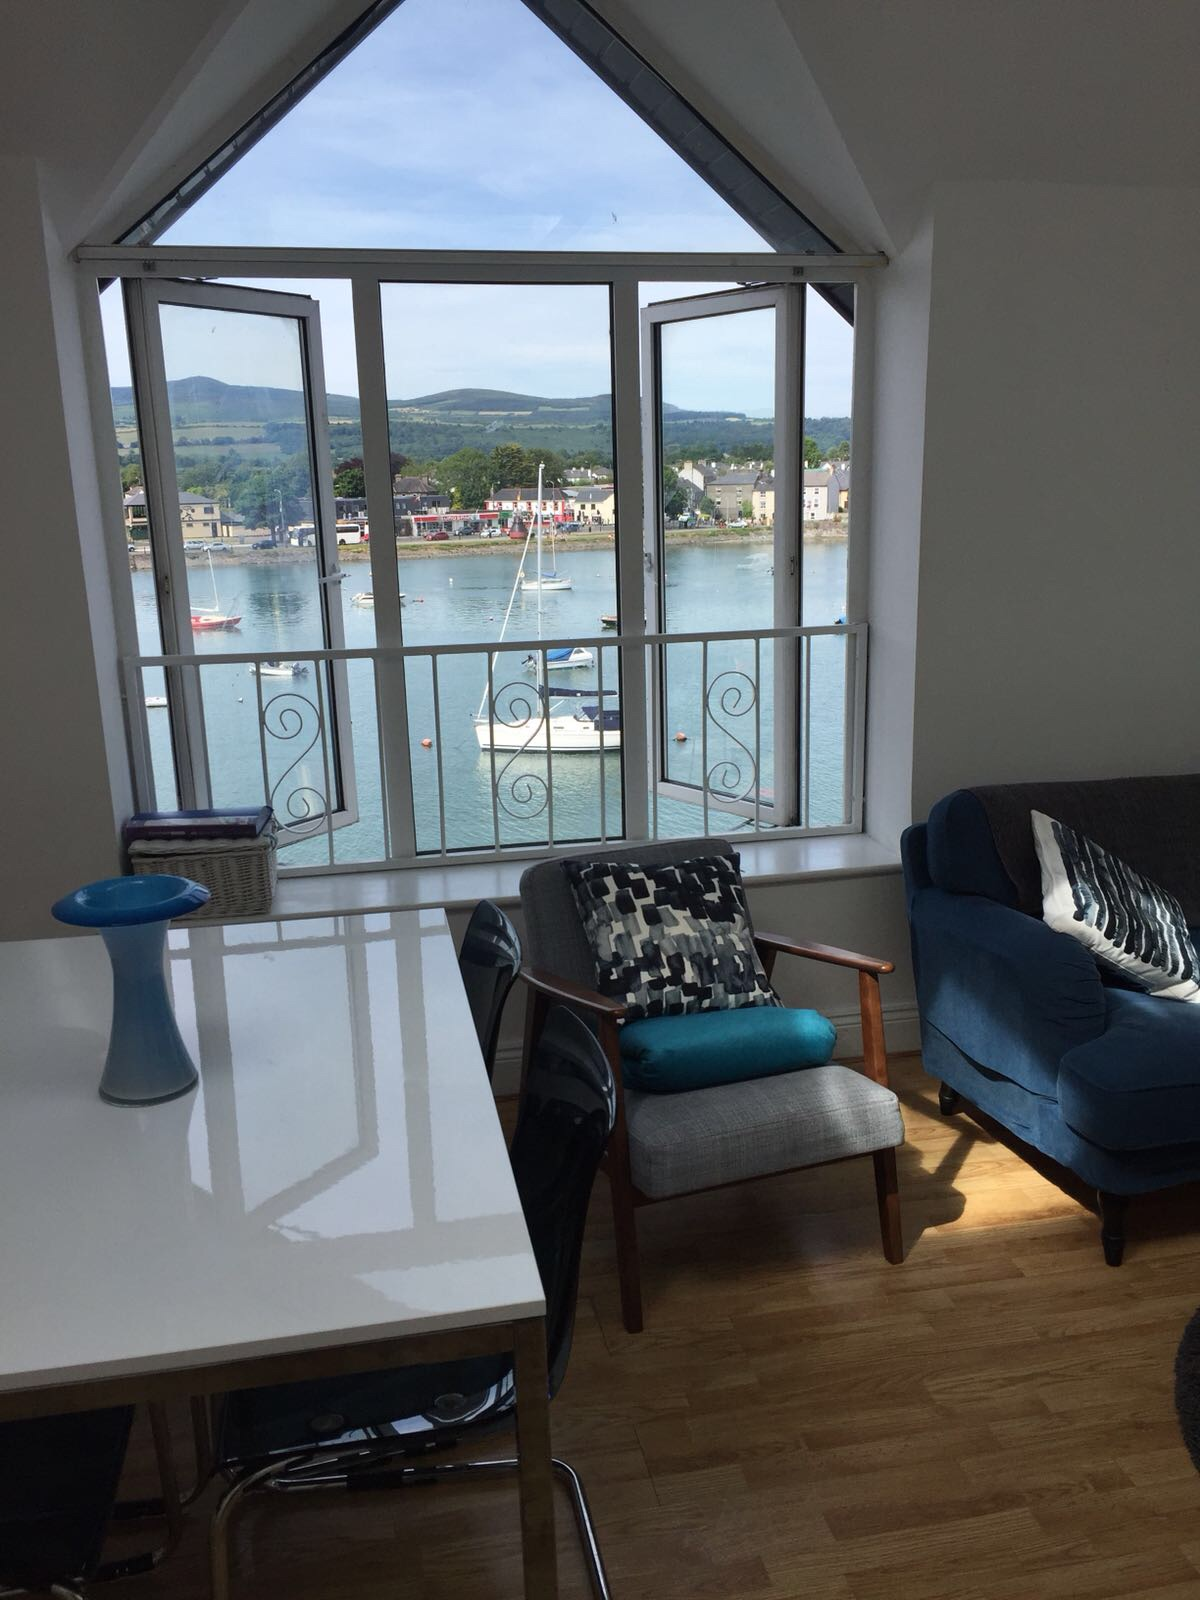 Secluded and central - Houses for Rent in Dungarvan - Airbnb